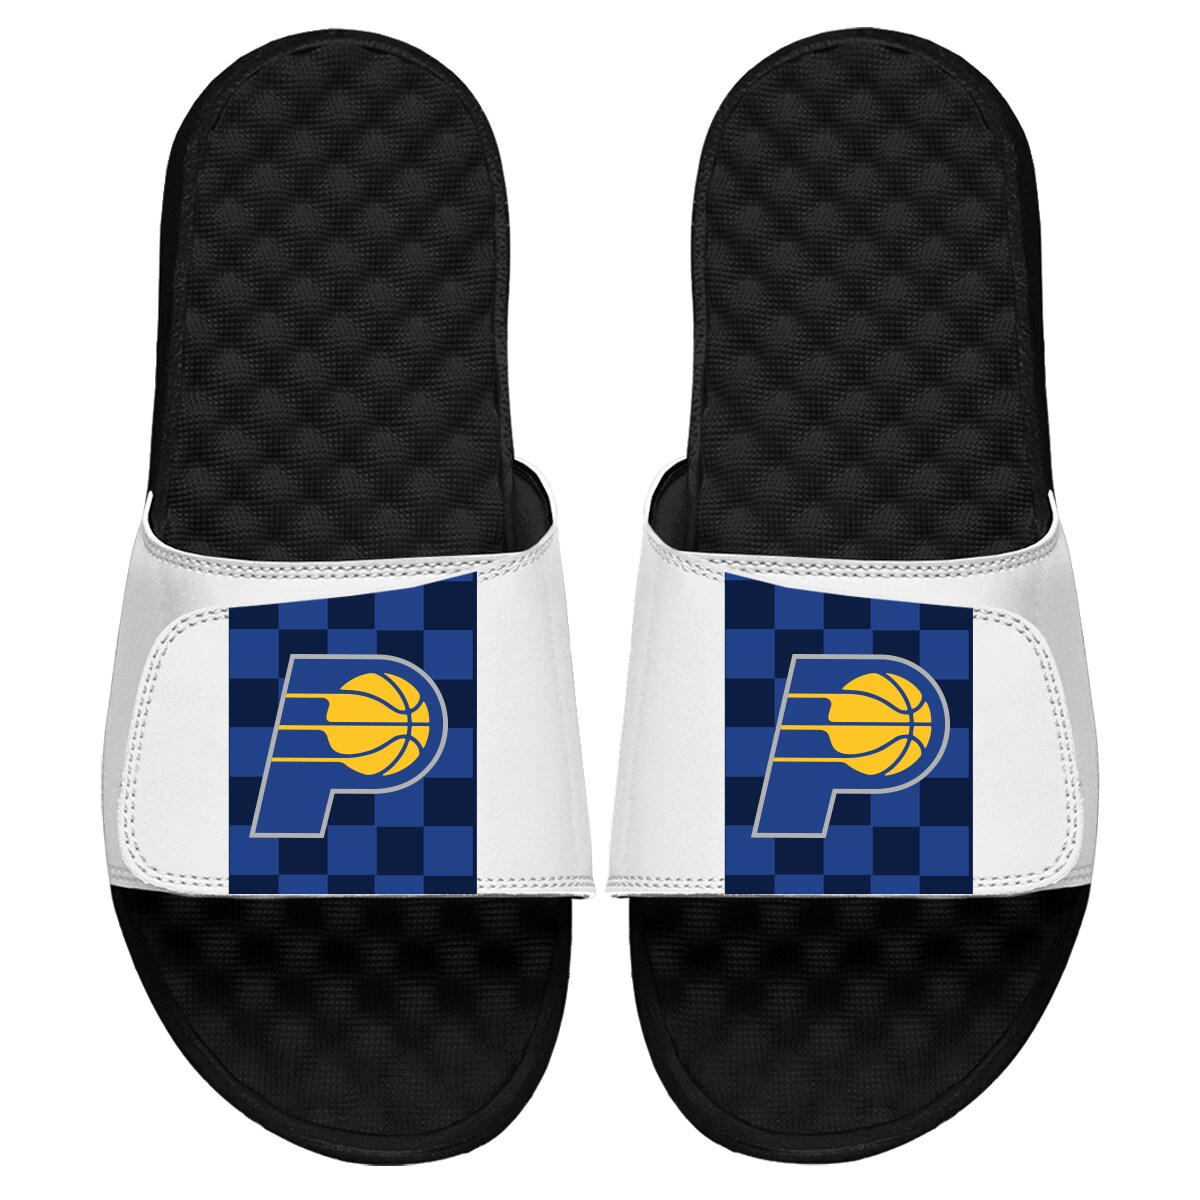 Indiana Pacers ISlide 2019/20 City Edition Slide Sandals - White